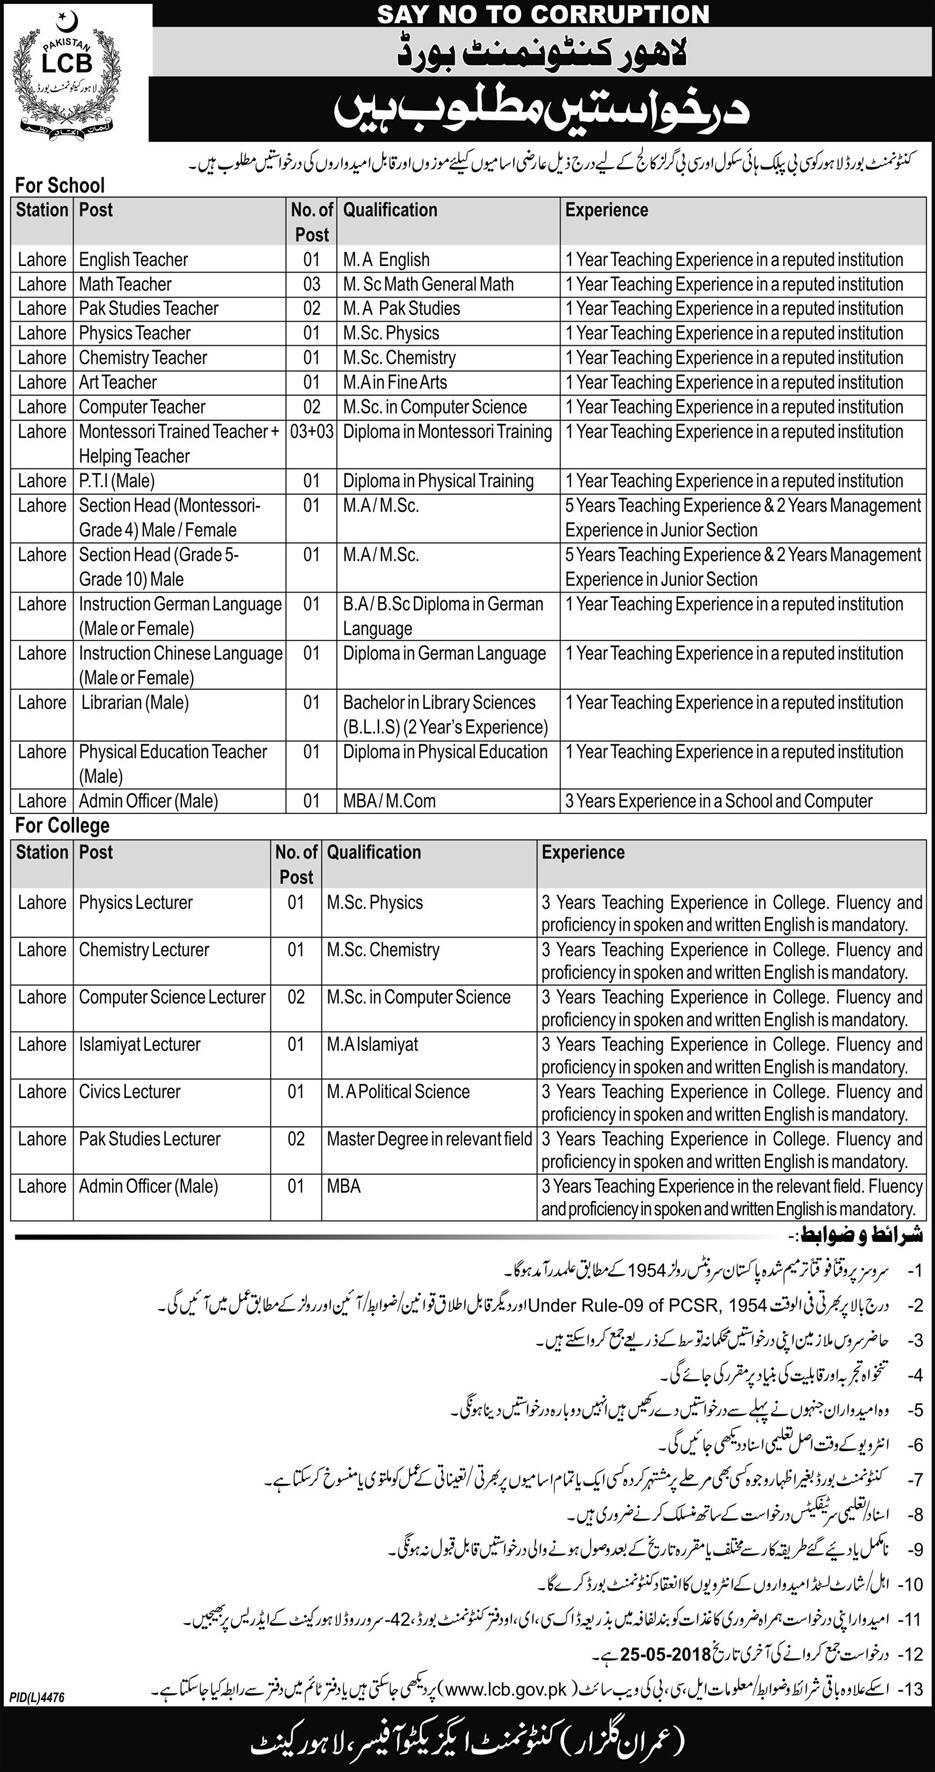 Lahore Contentment Board Latest Jobs 2018 in Lahore on May, 2018 | Education Department